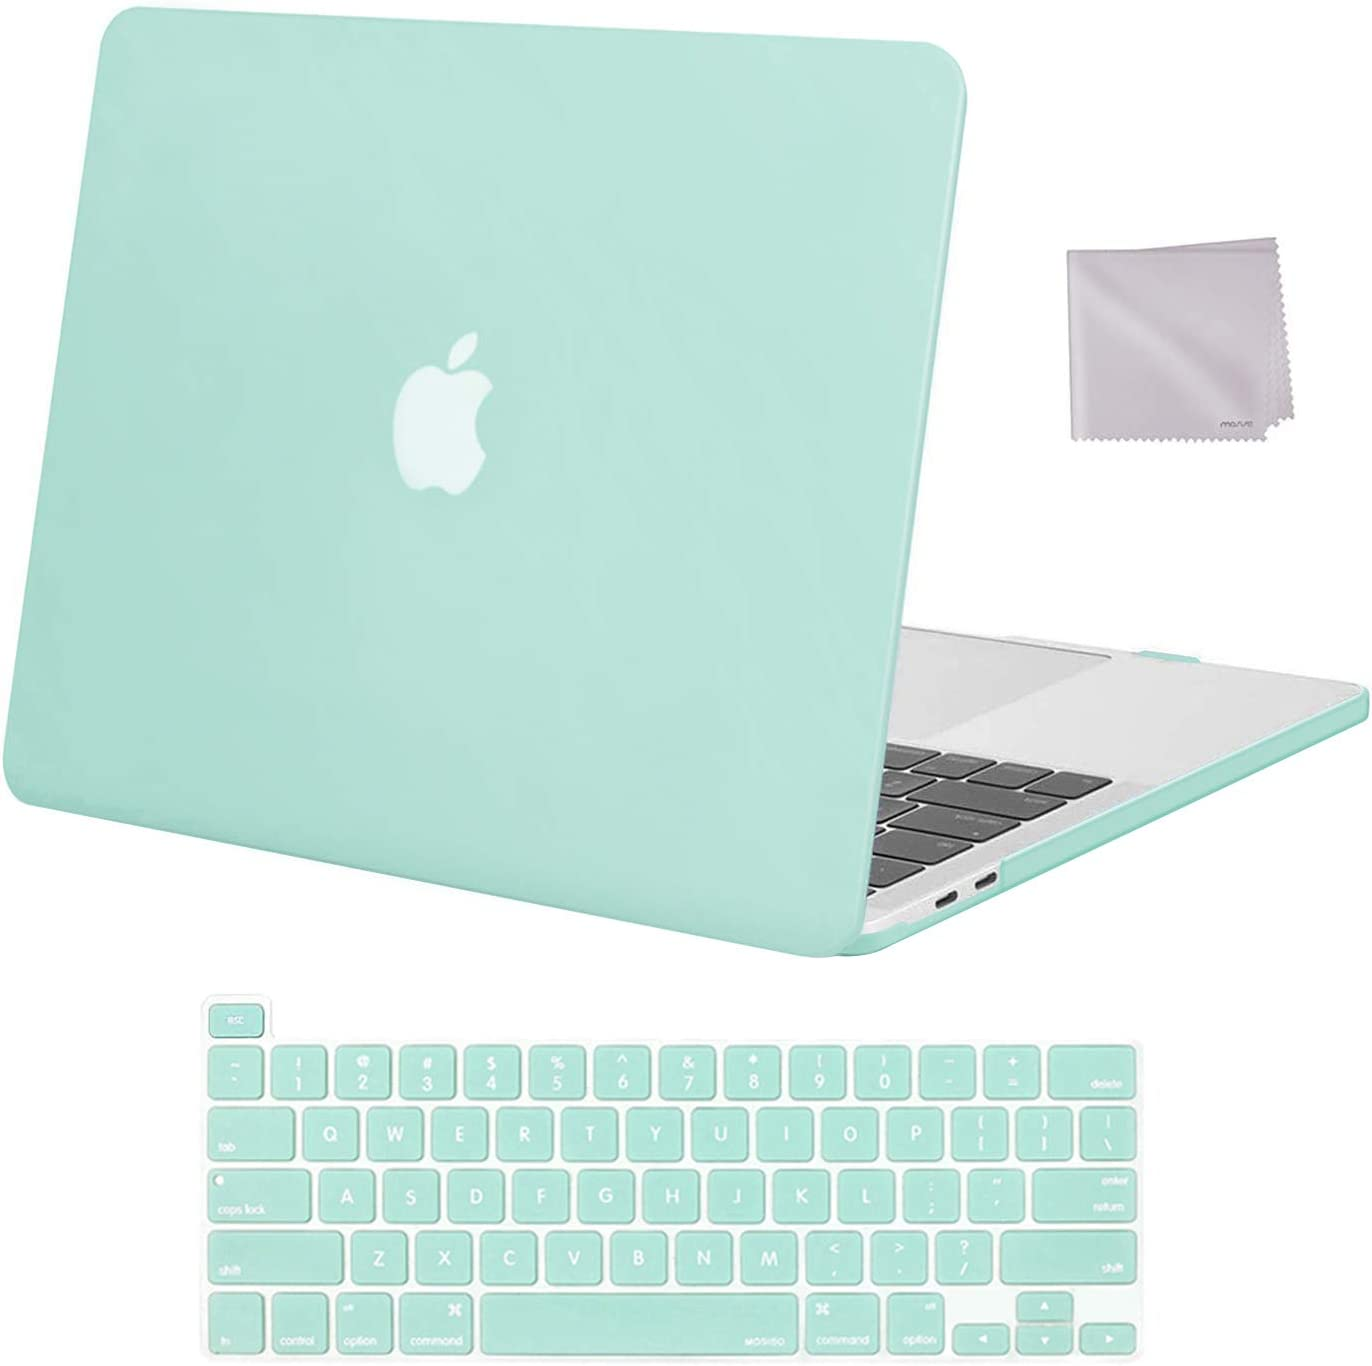 MOSISO Compatible with MacBook Pro 13 inch Case 2016-2020 Release A2338 M1 A2289 A2251 A2159 A1989 A1706 A1708, Plastic Hard Shell Case & Keyboard Cover Skin & Wipe Cloth, Mint Green